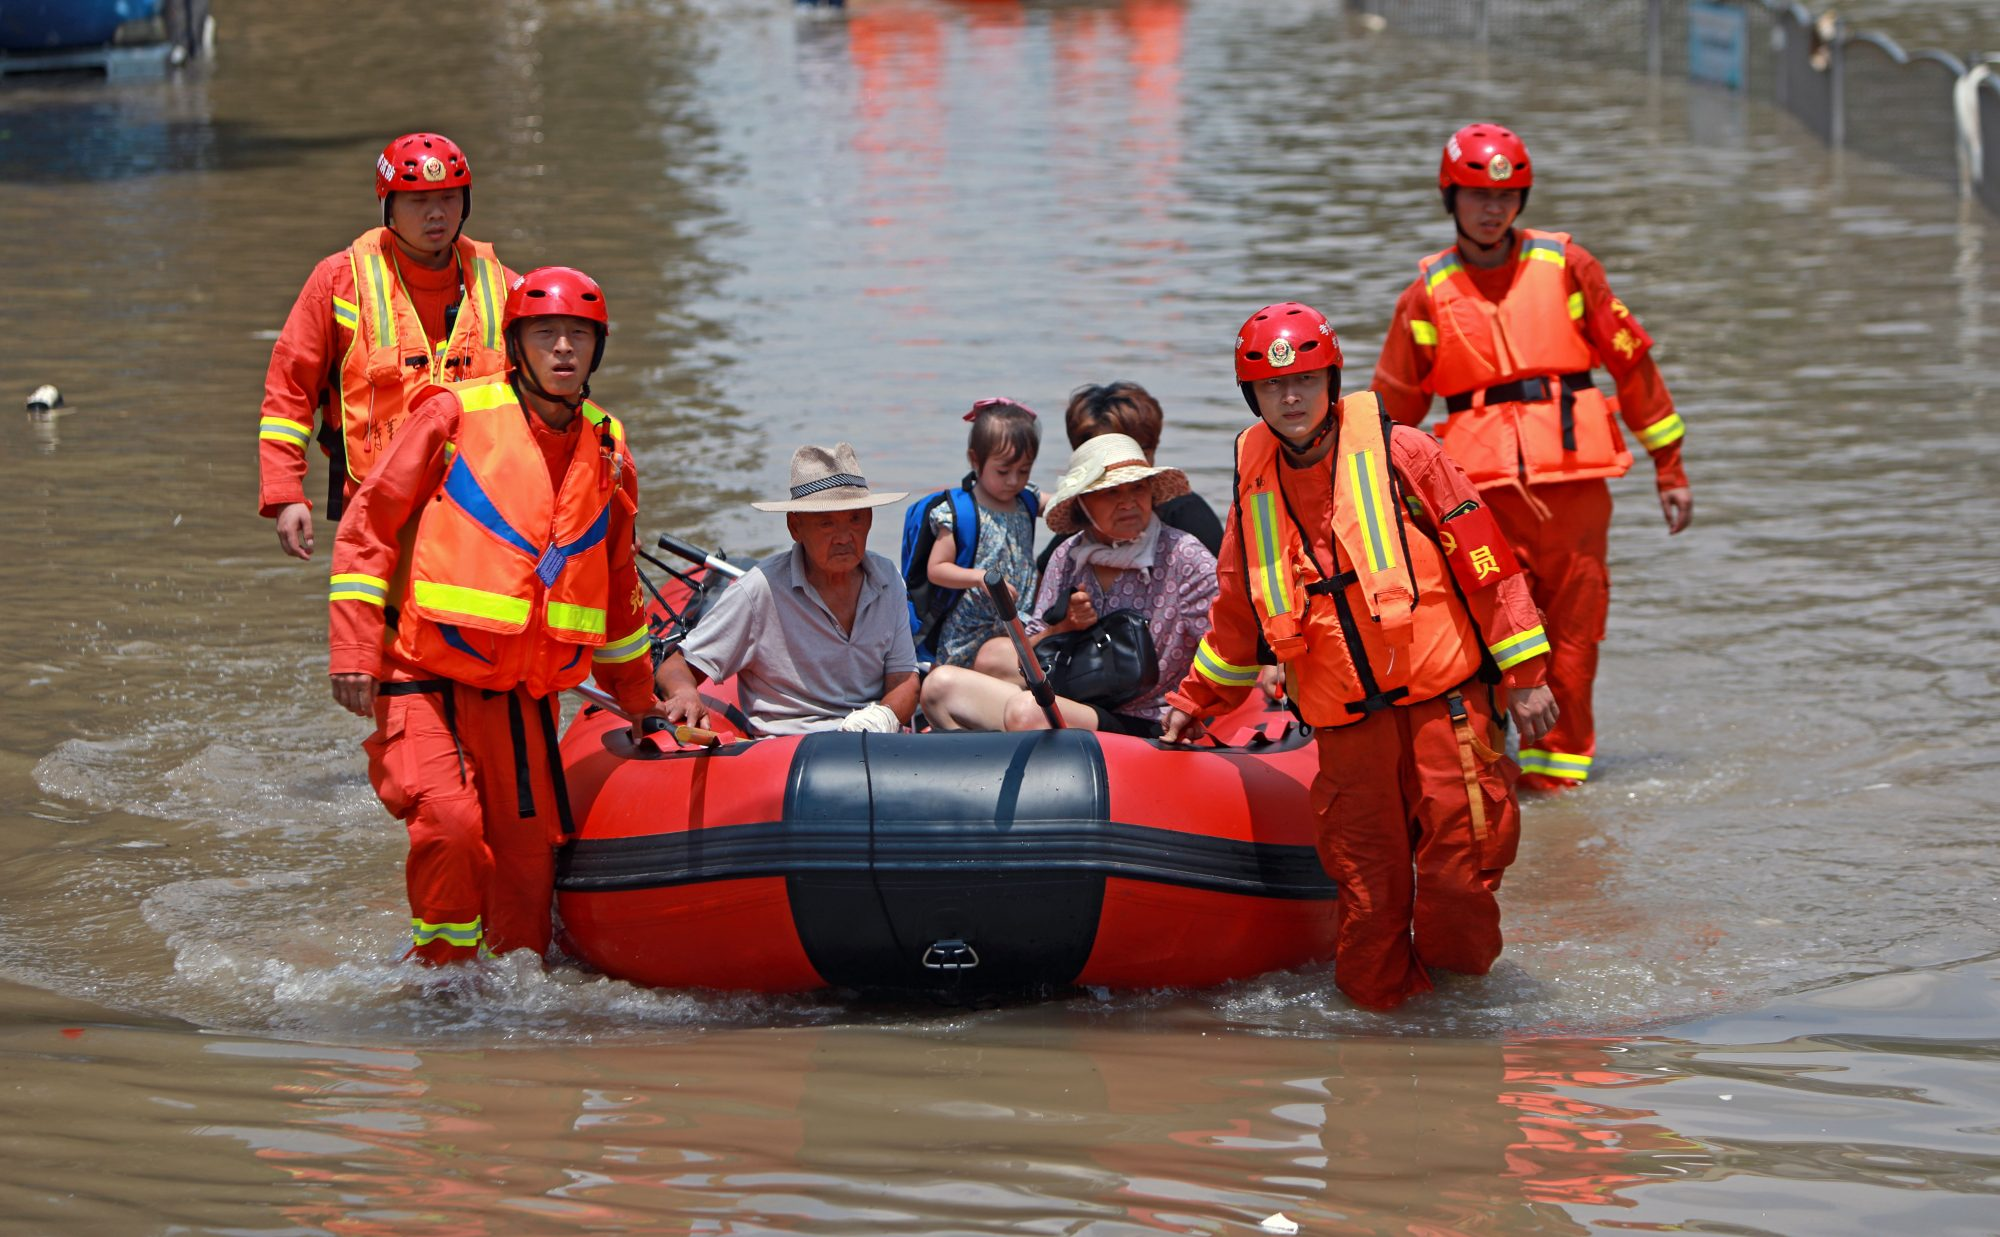 Torrential rains in China lead to mass evacuations - channel 4